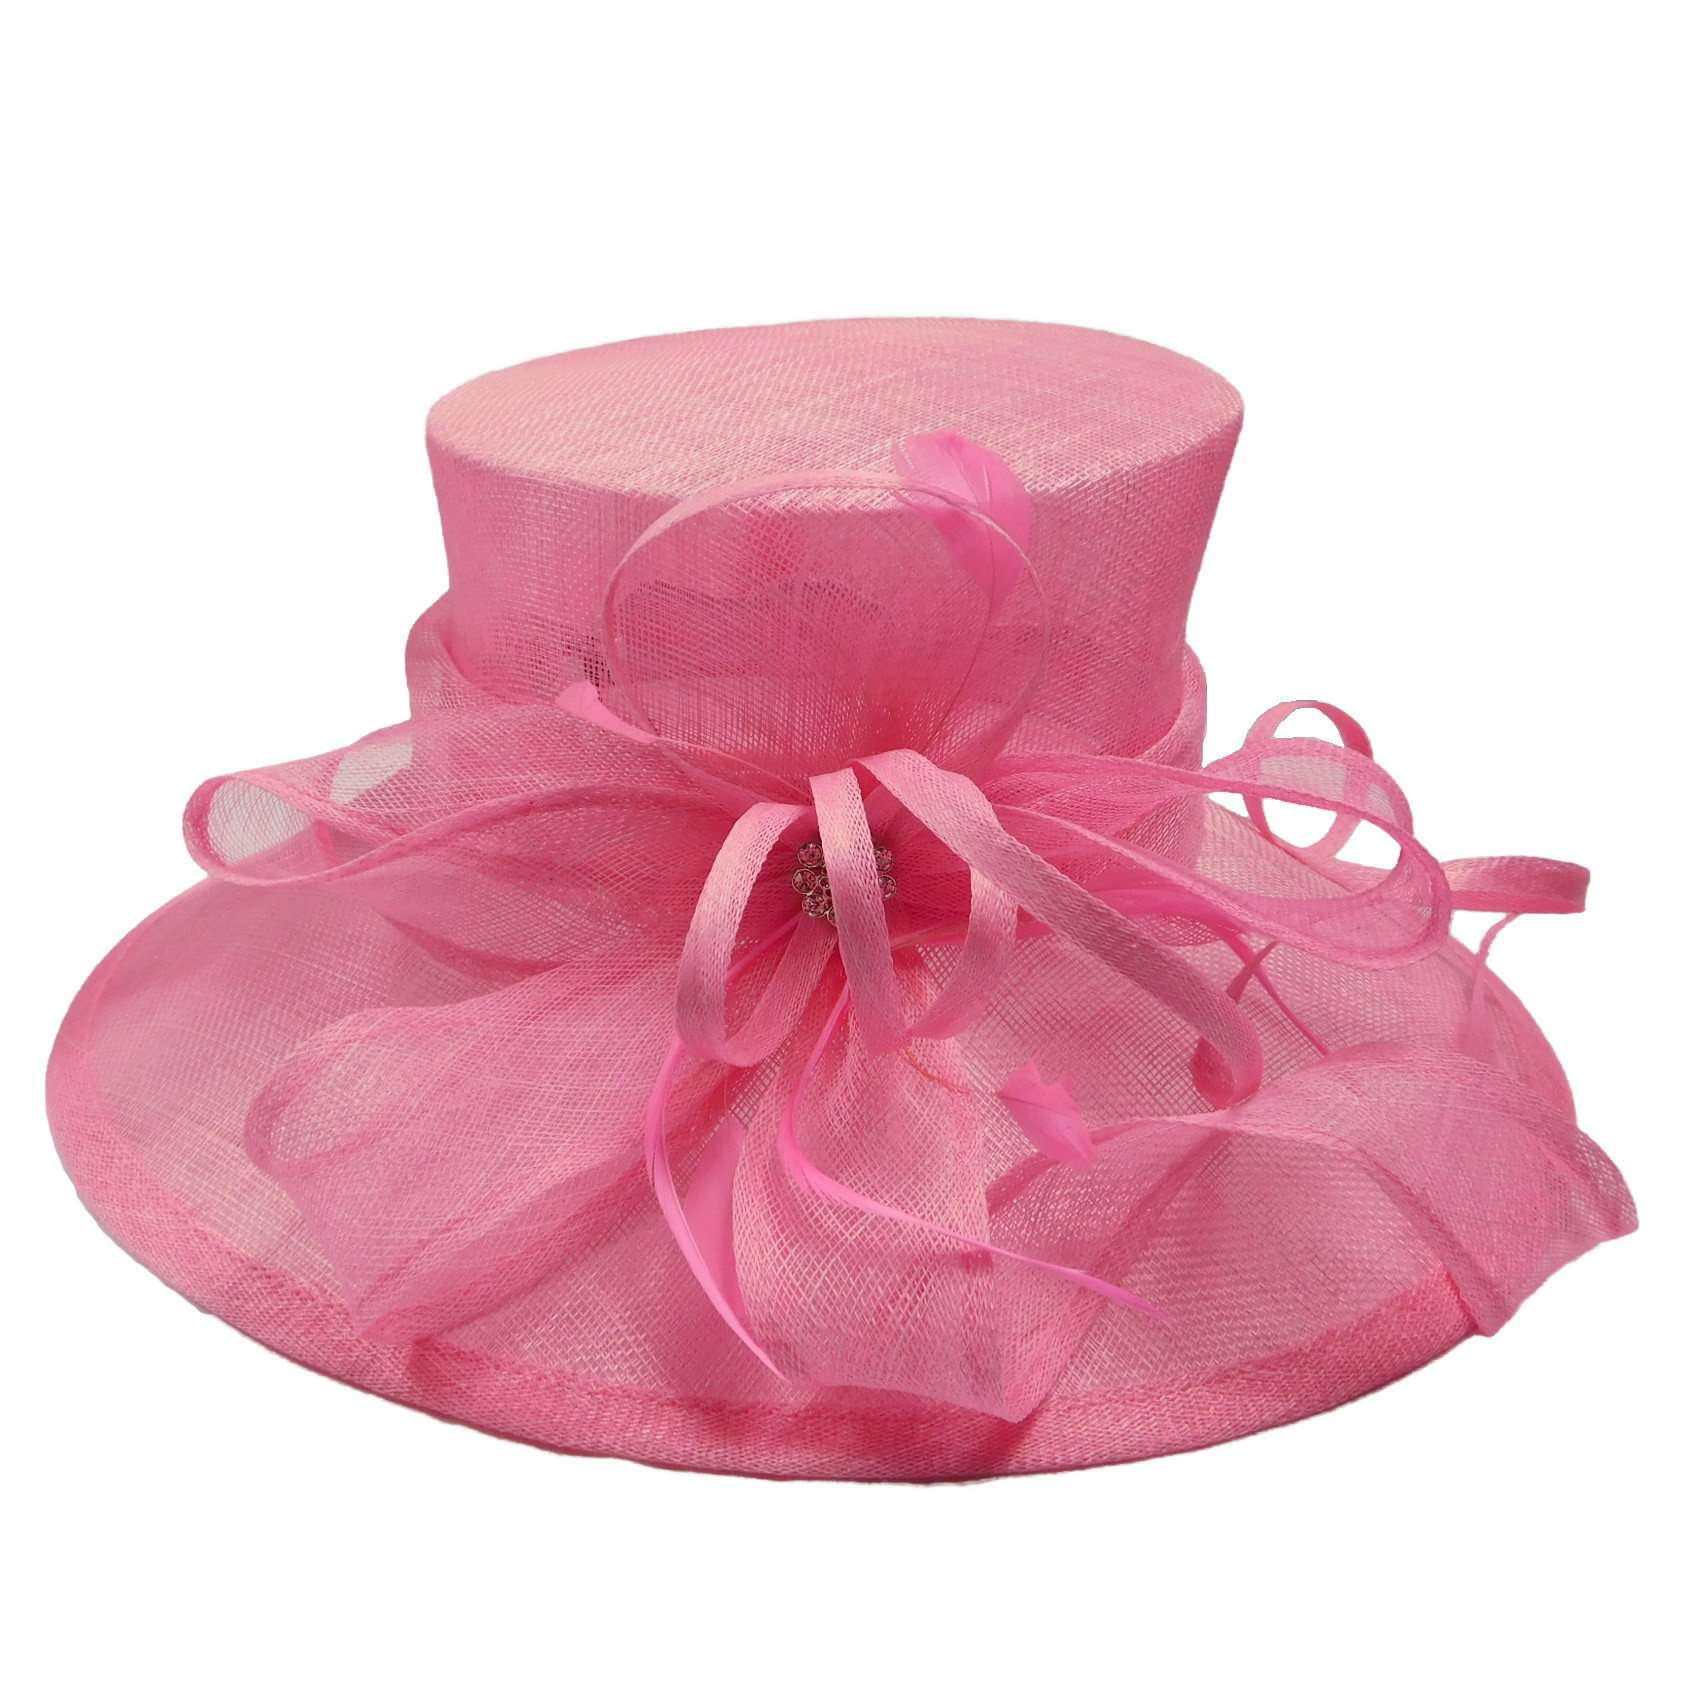 Large Sinamay Hat with Bow - SetarTrading Hats